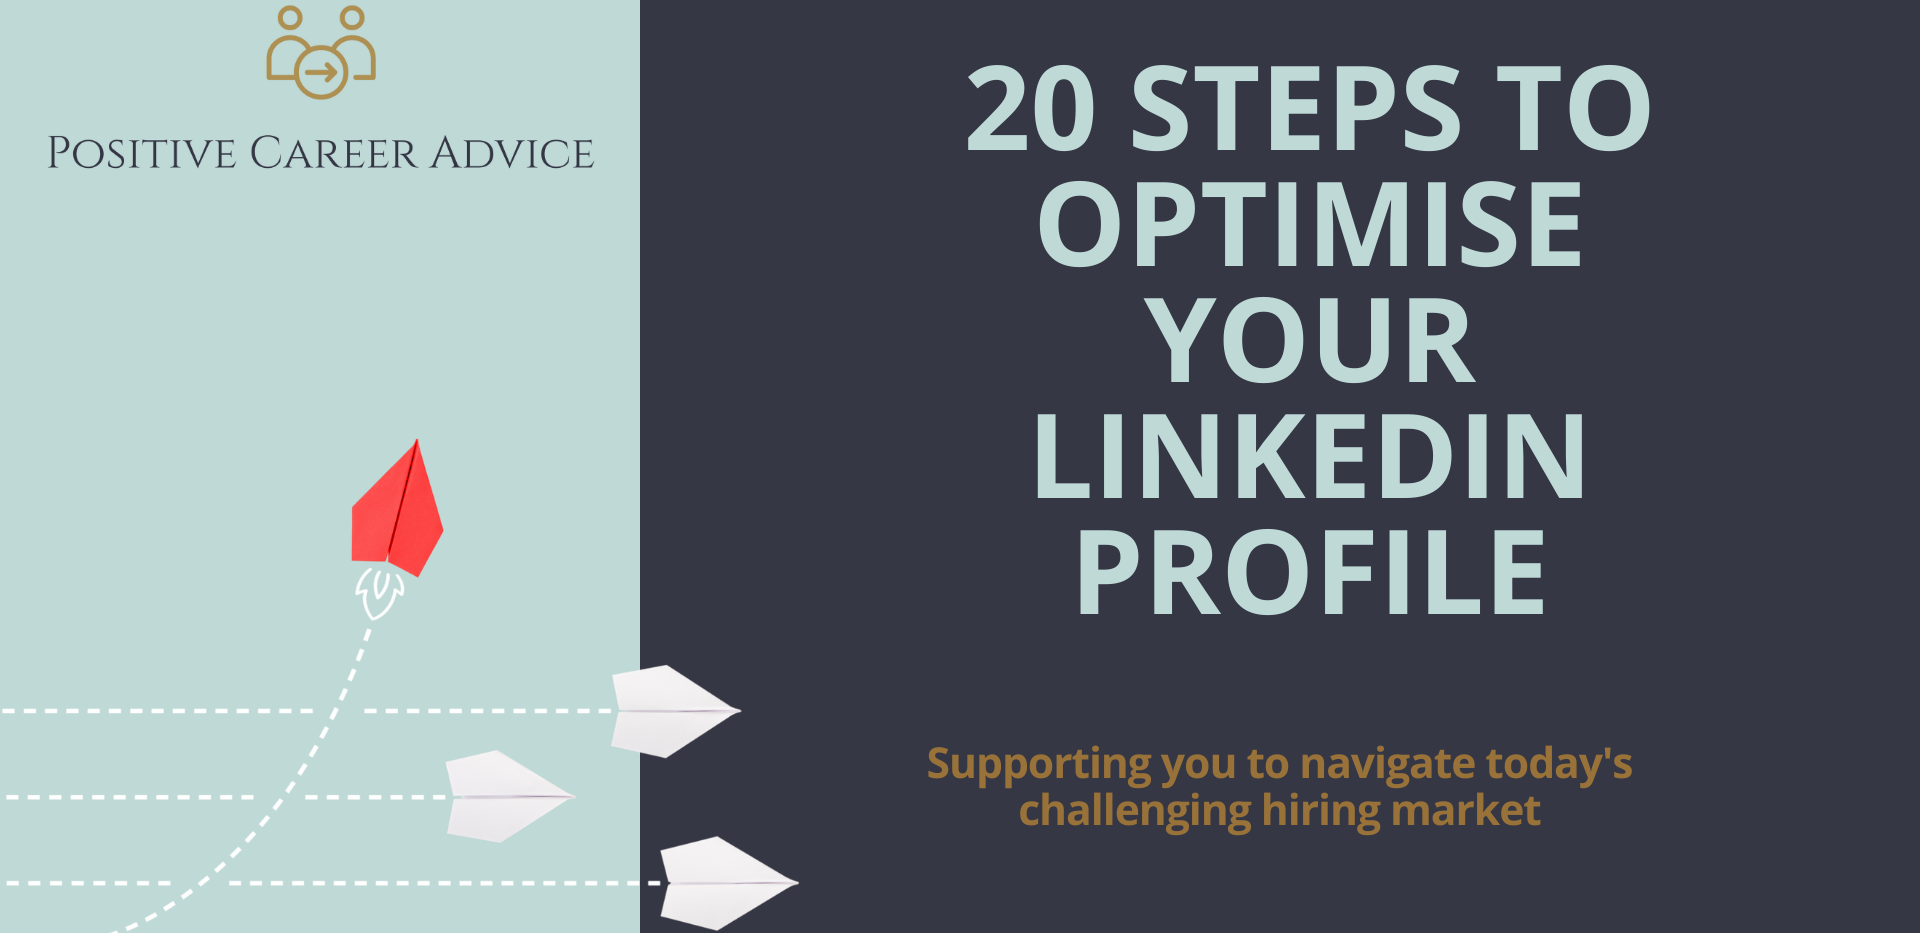 20 Steps to optimise your LinkedIn Profile